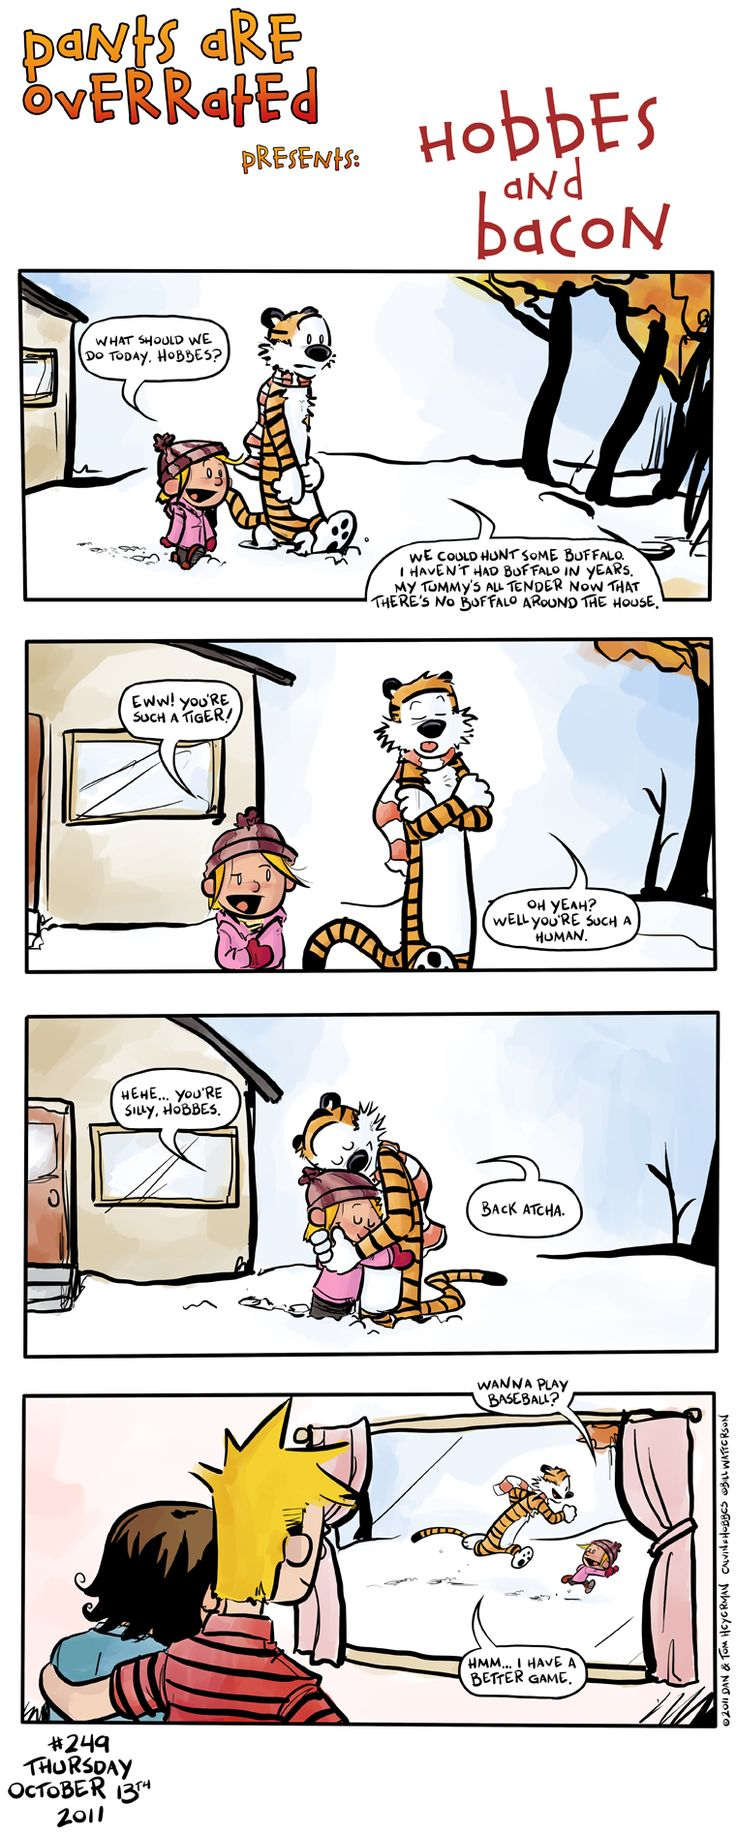 """Pants Are Overrated Presents: Hobbes and Bacon #4 (""""Hobbes and Bacon"""" is a """"Calvin and Hobbes"""" tribute that takes place 26 years later)"""